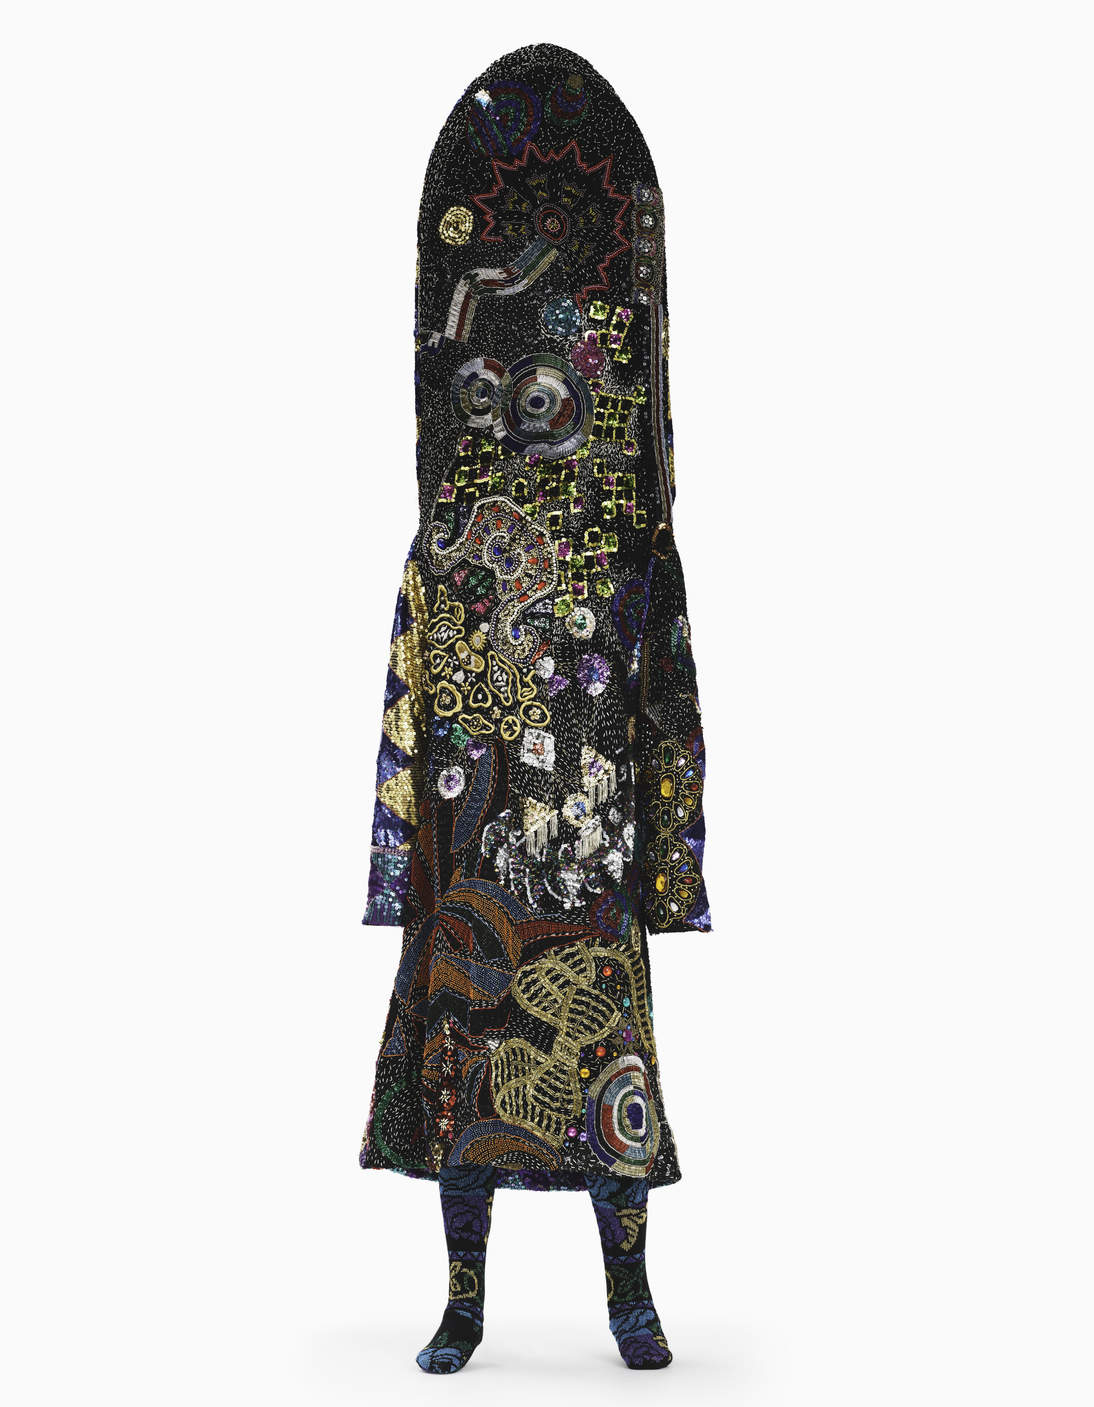 Nick Cave's Soundsuit is mixed media